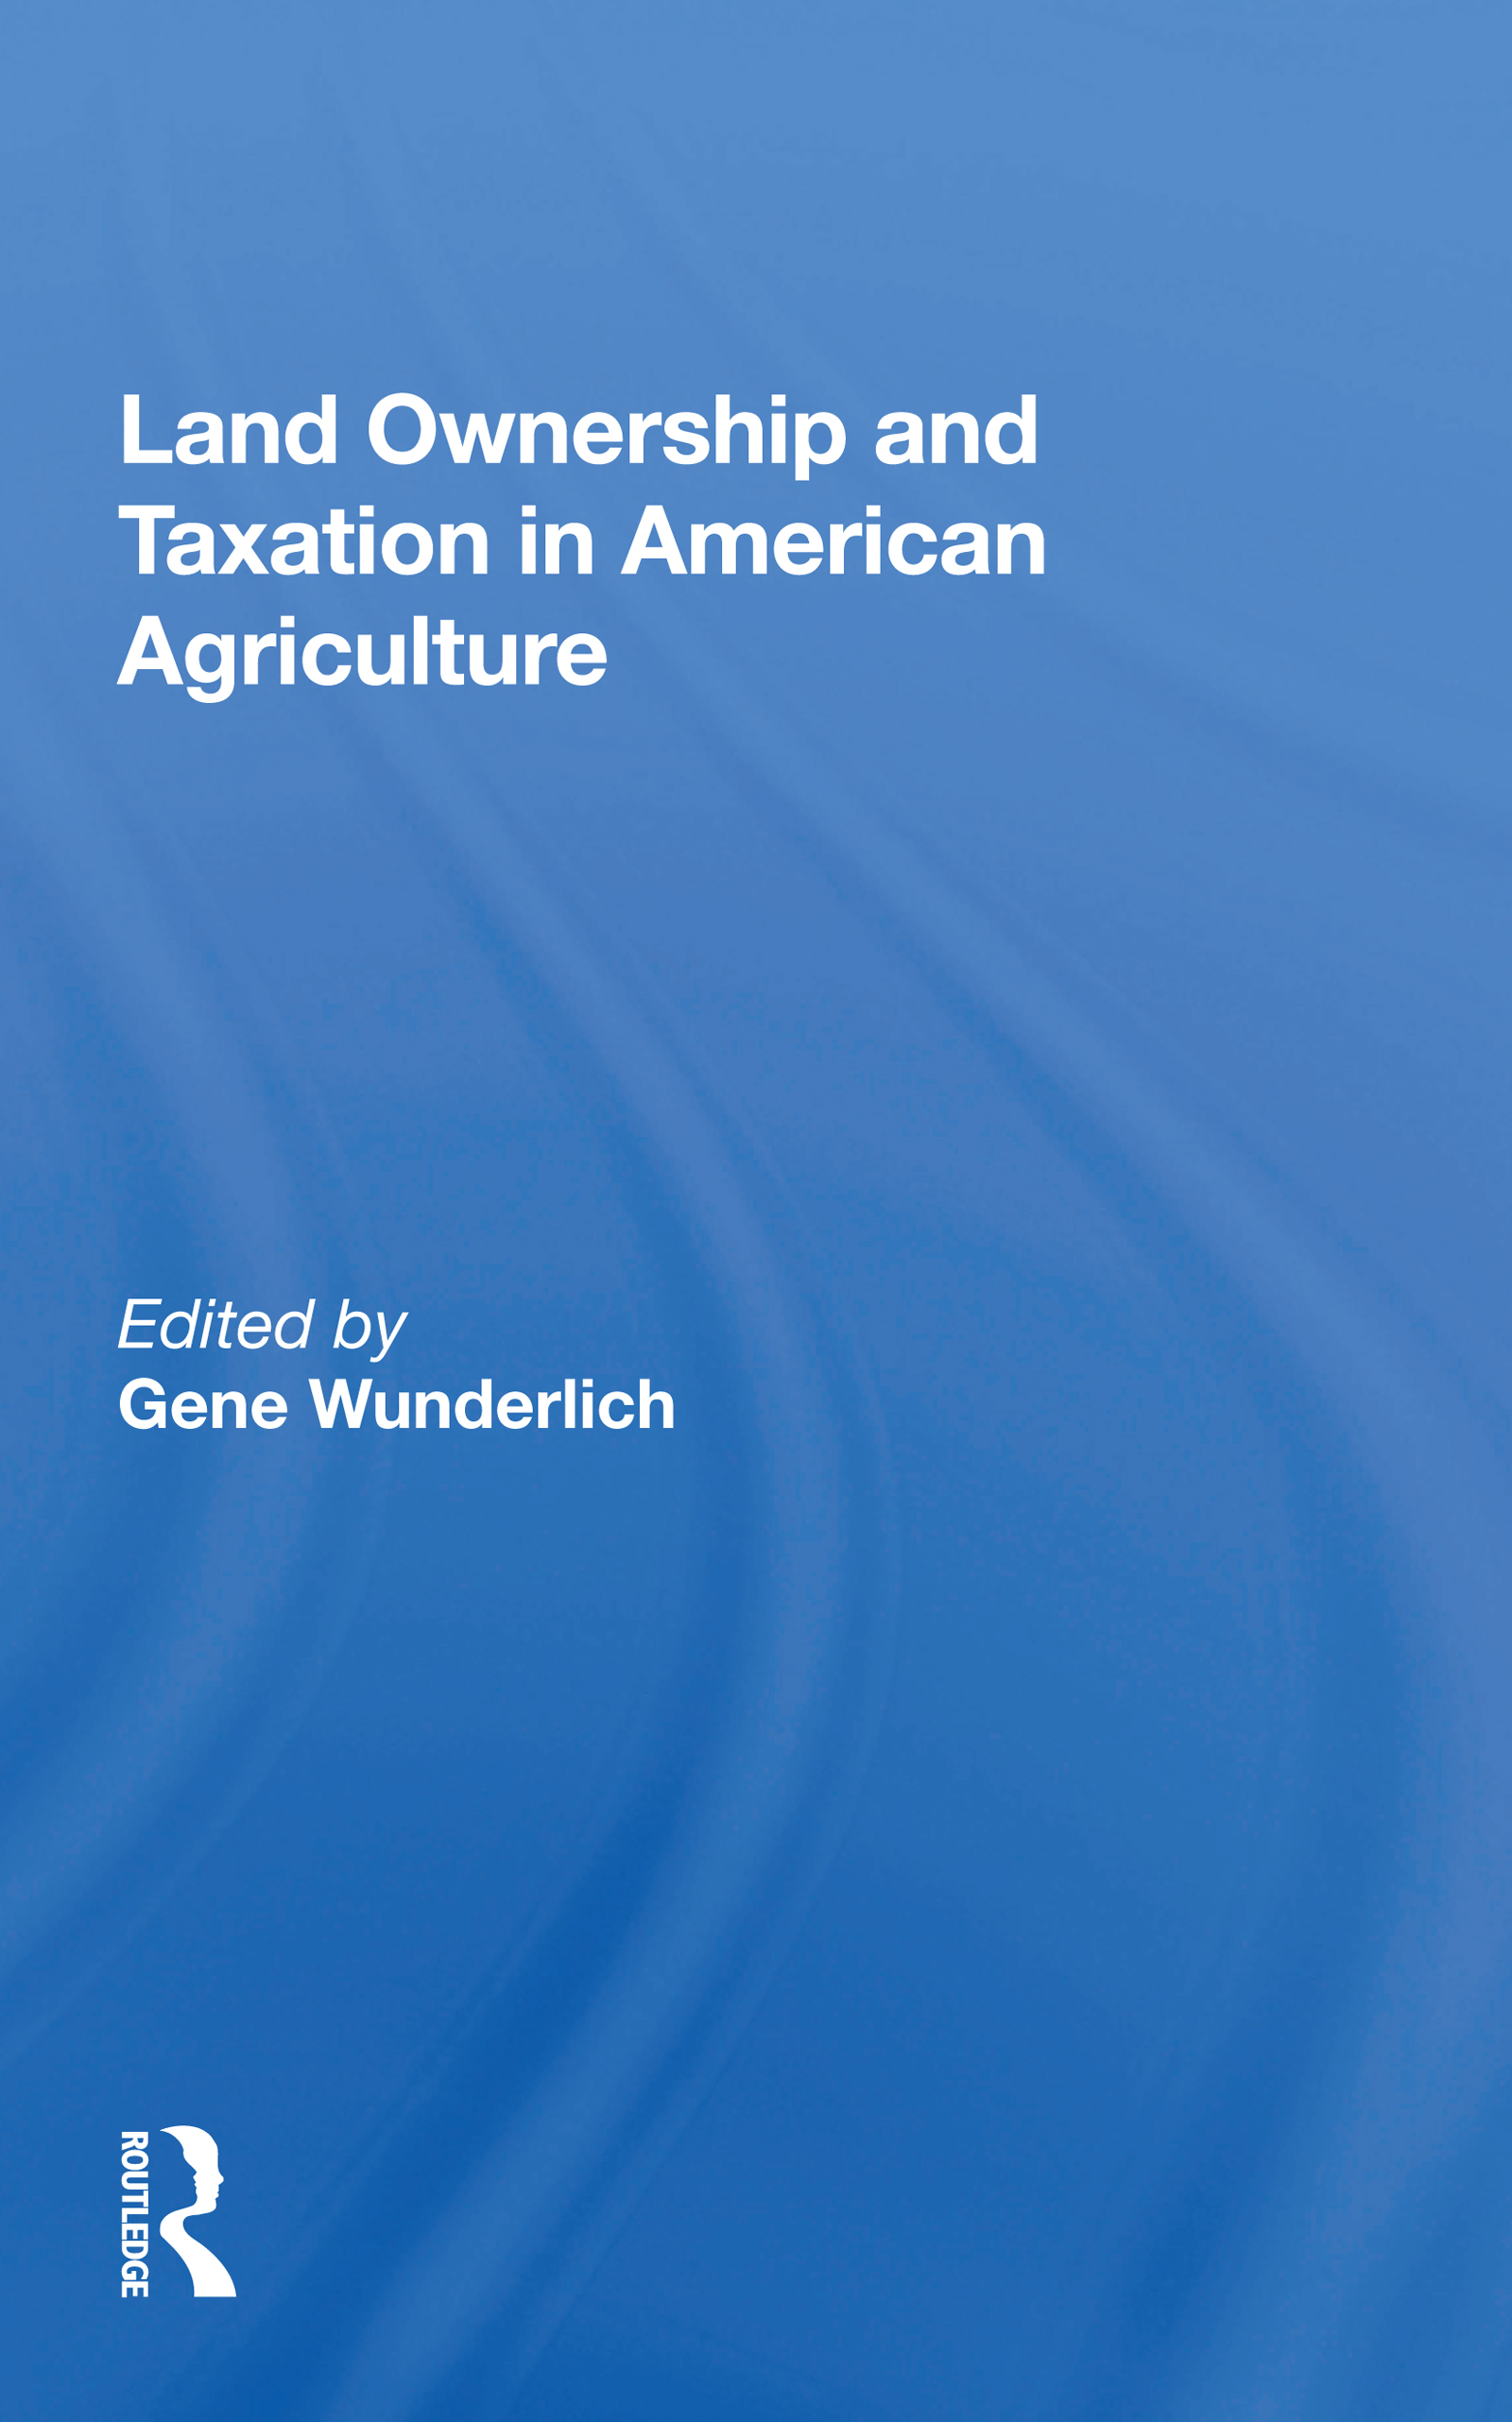 Land Ownership and Taxation in American Agriculture